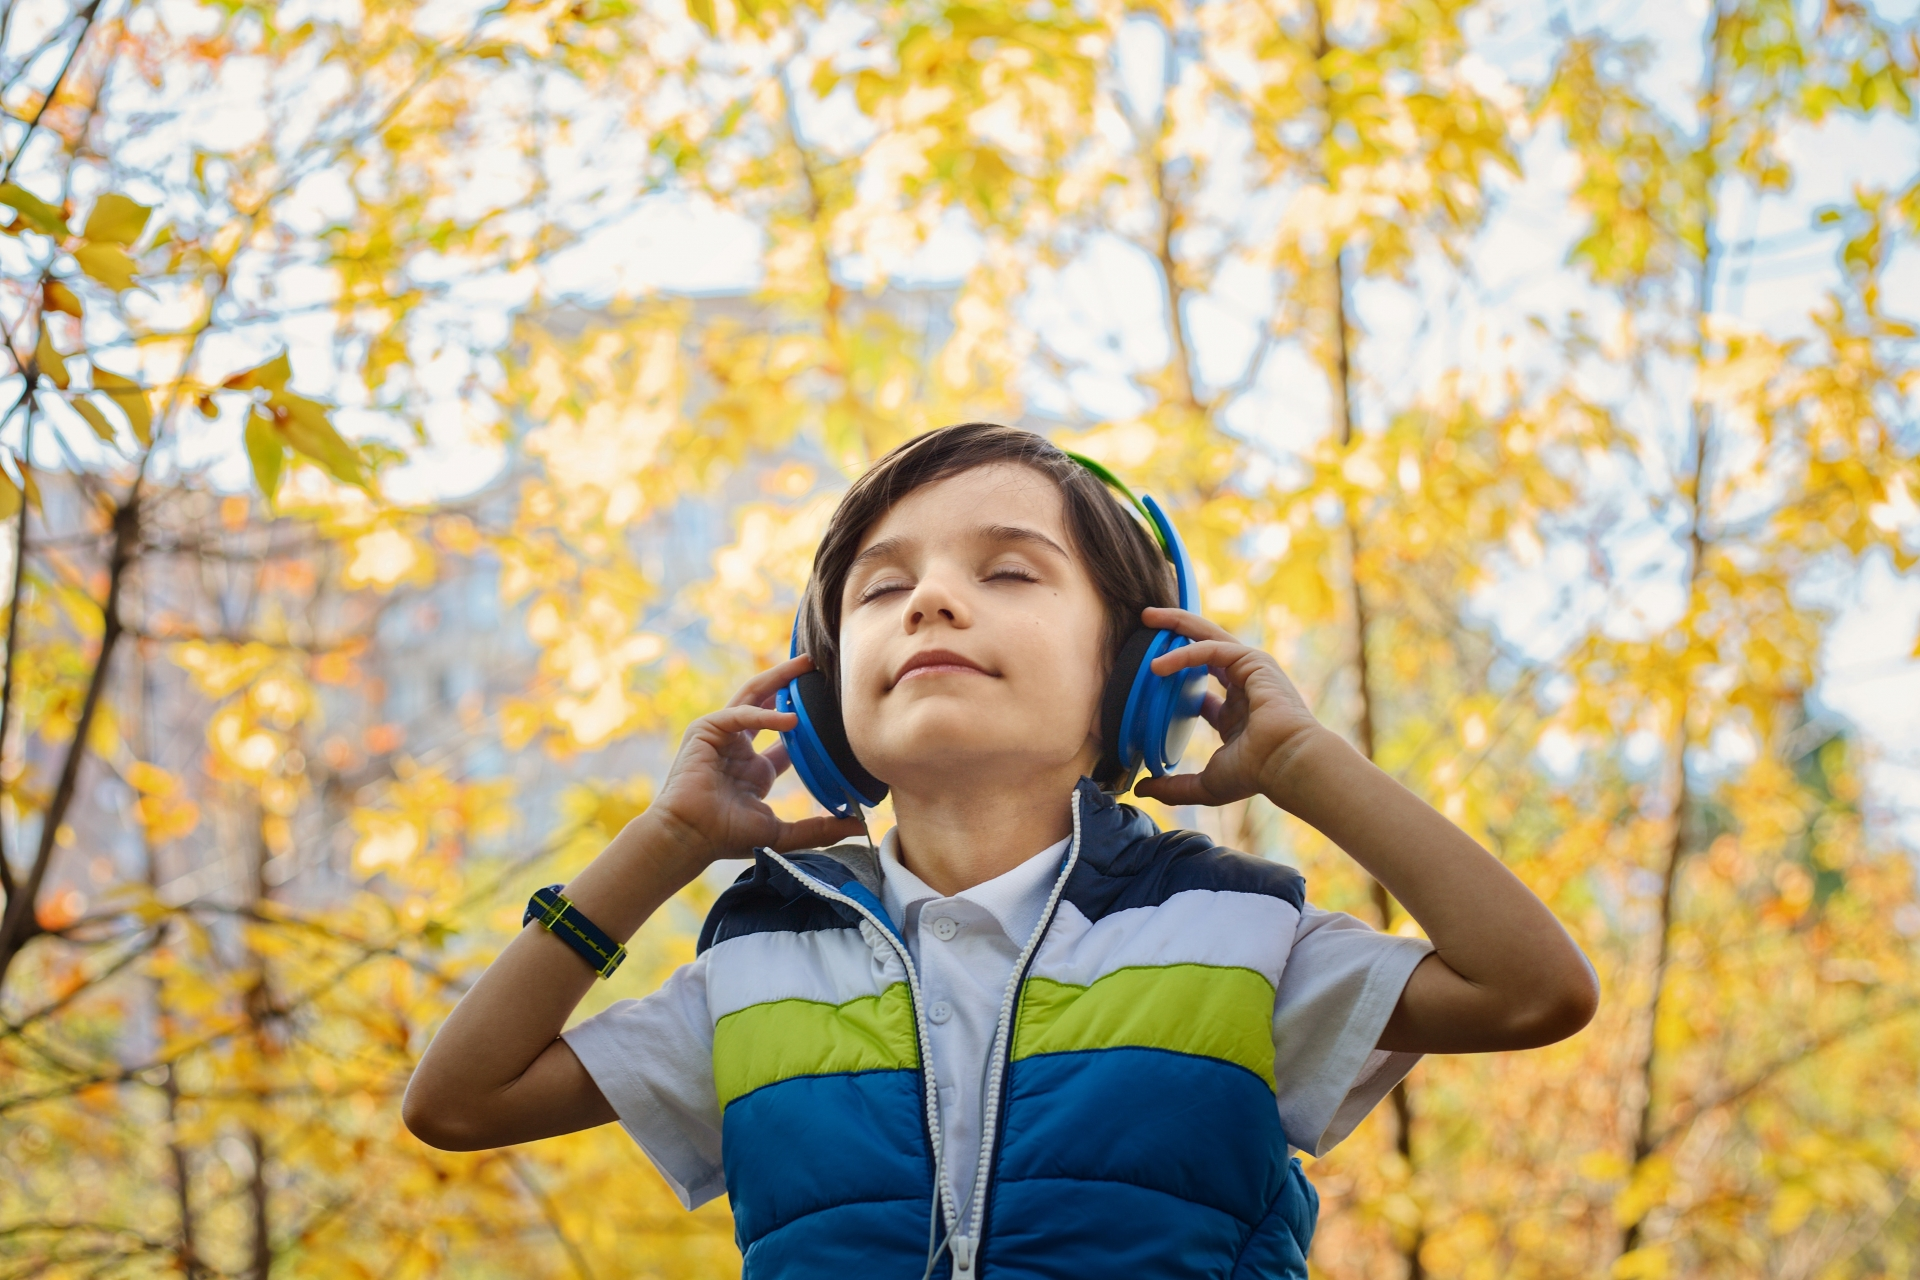 Audiobooks for kids continue to grow in popularity says new research - dive into an audiobook today